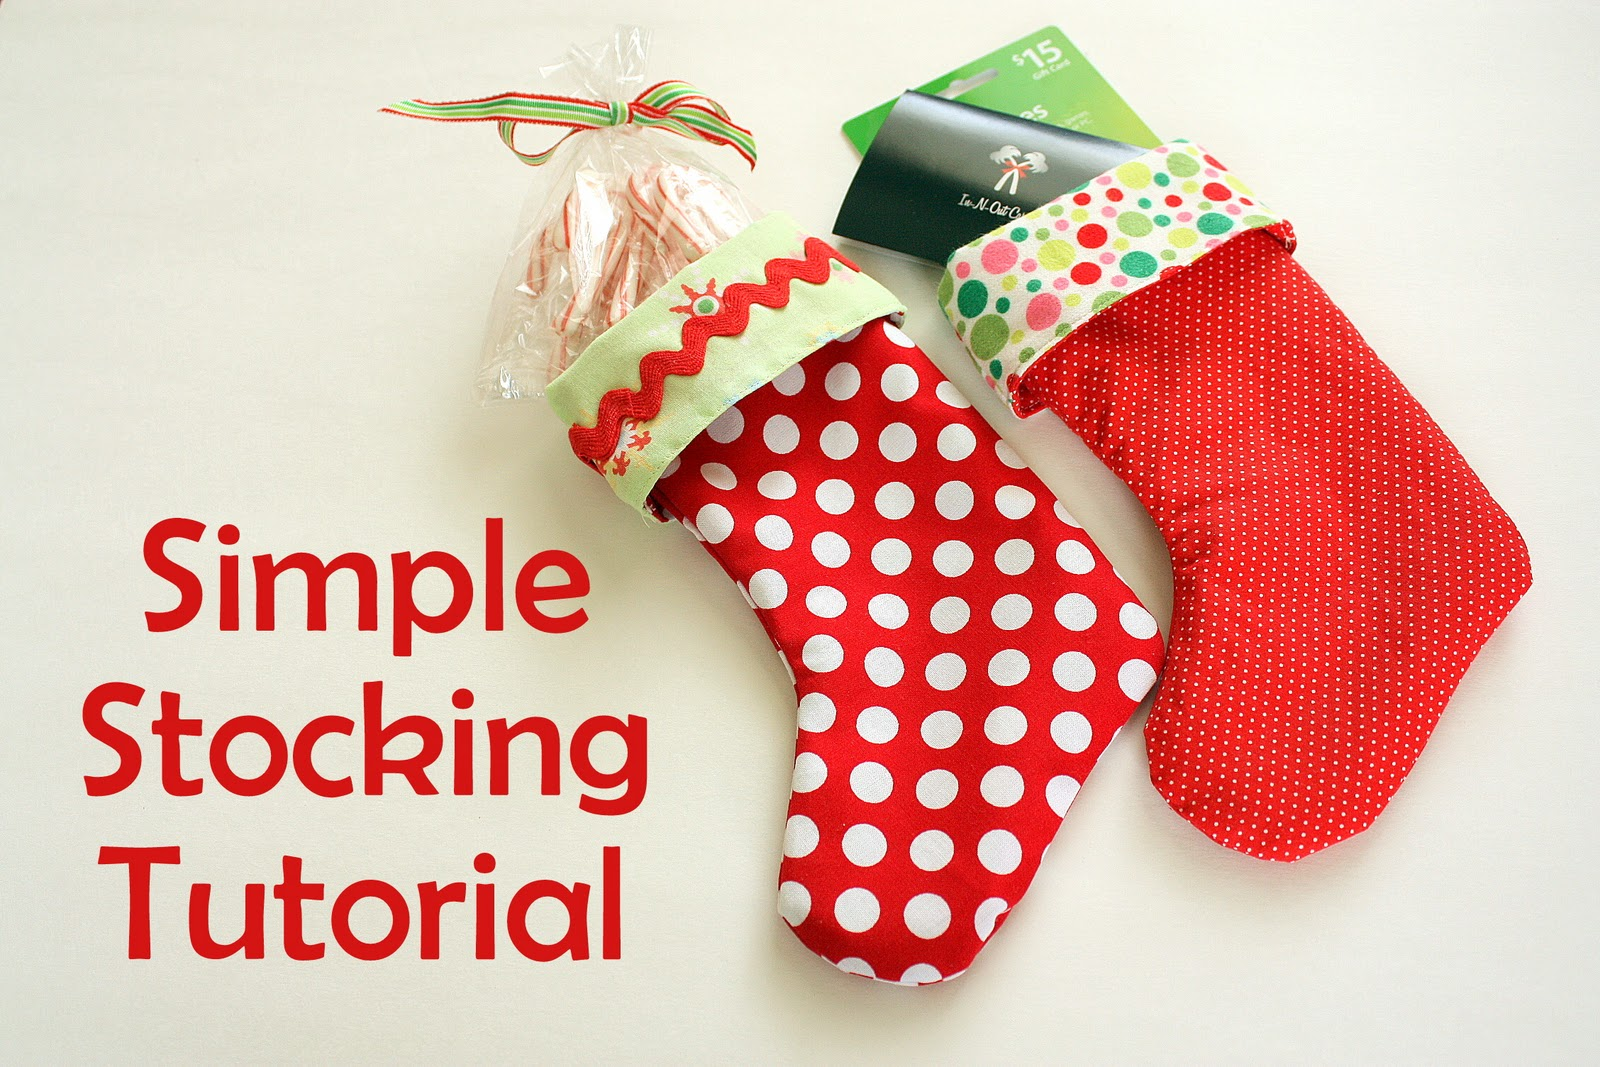 Easy diy stocking tutorial jeuxipadfo Gallery